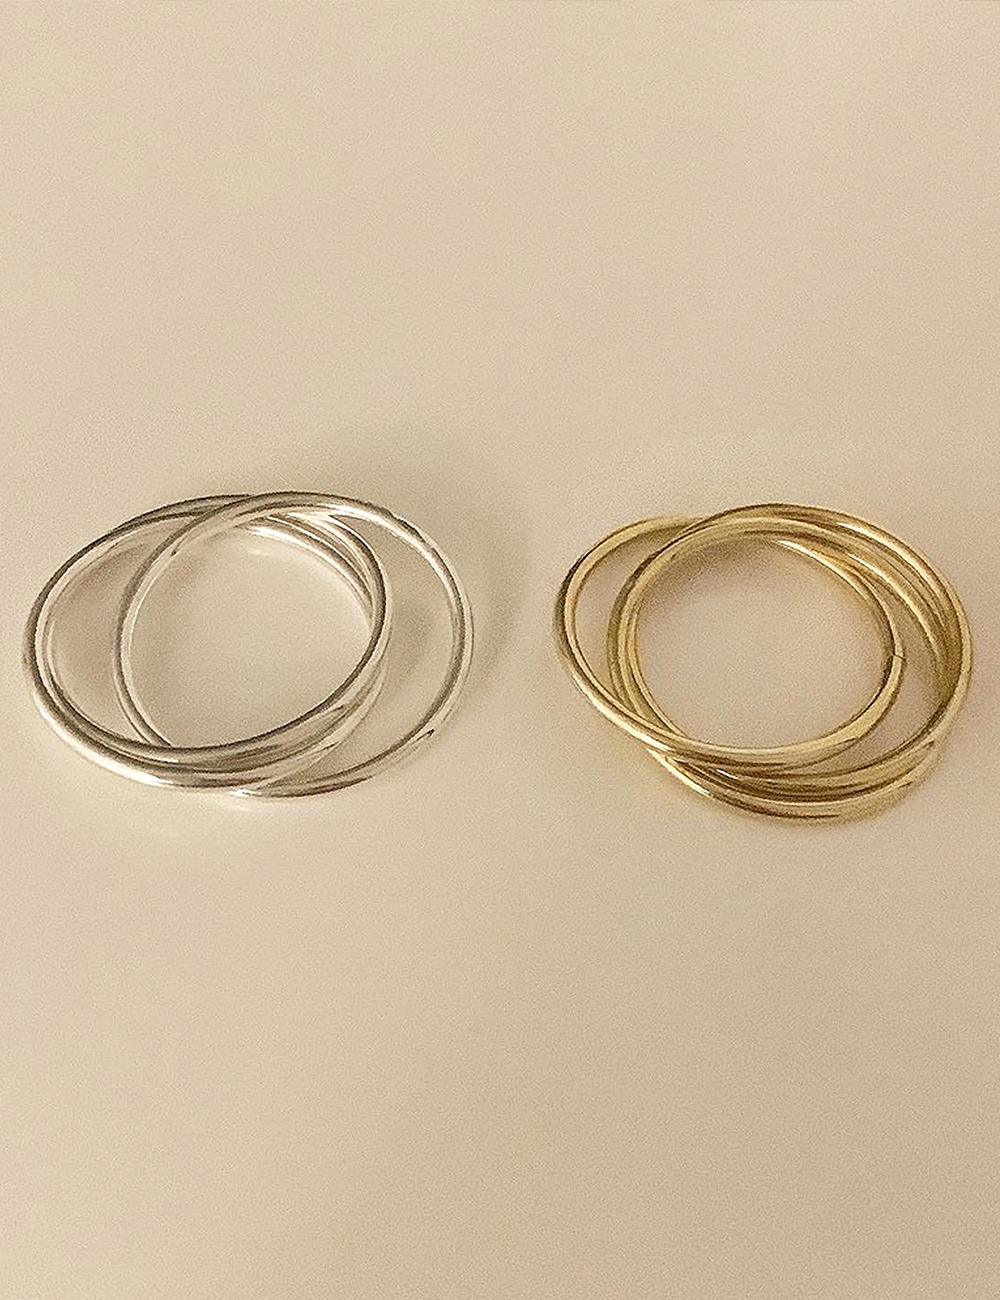 (silver 92.5) Three chain ring